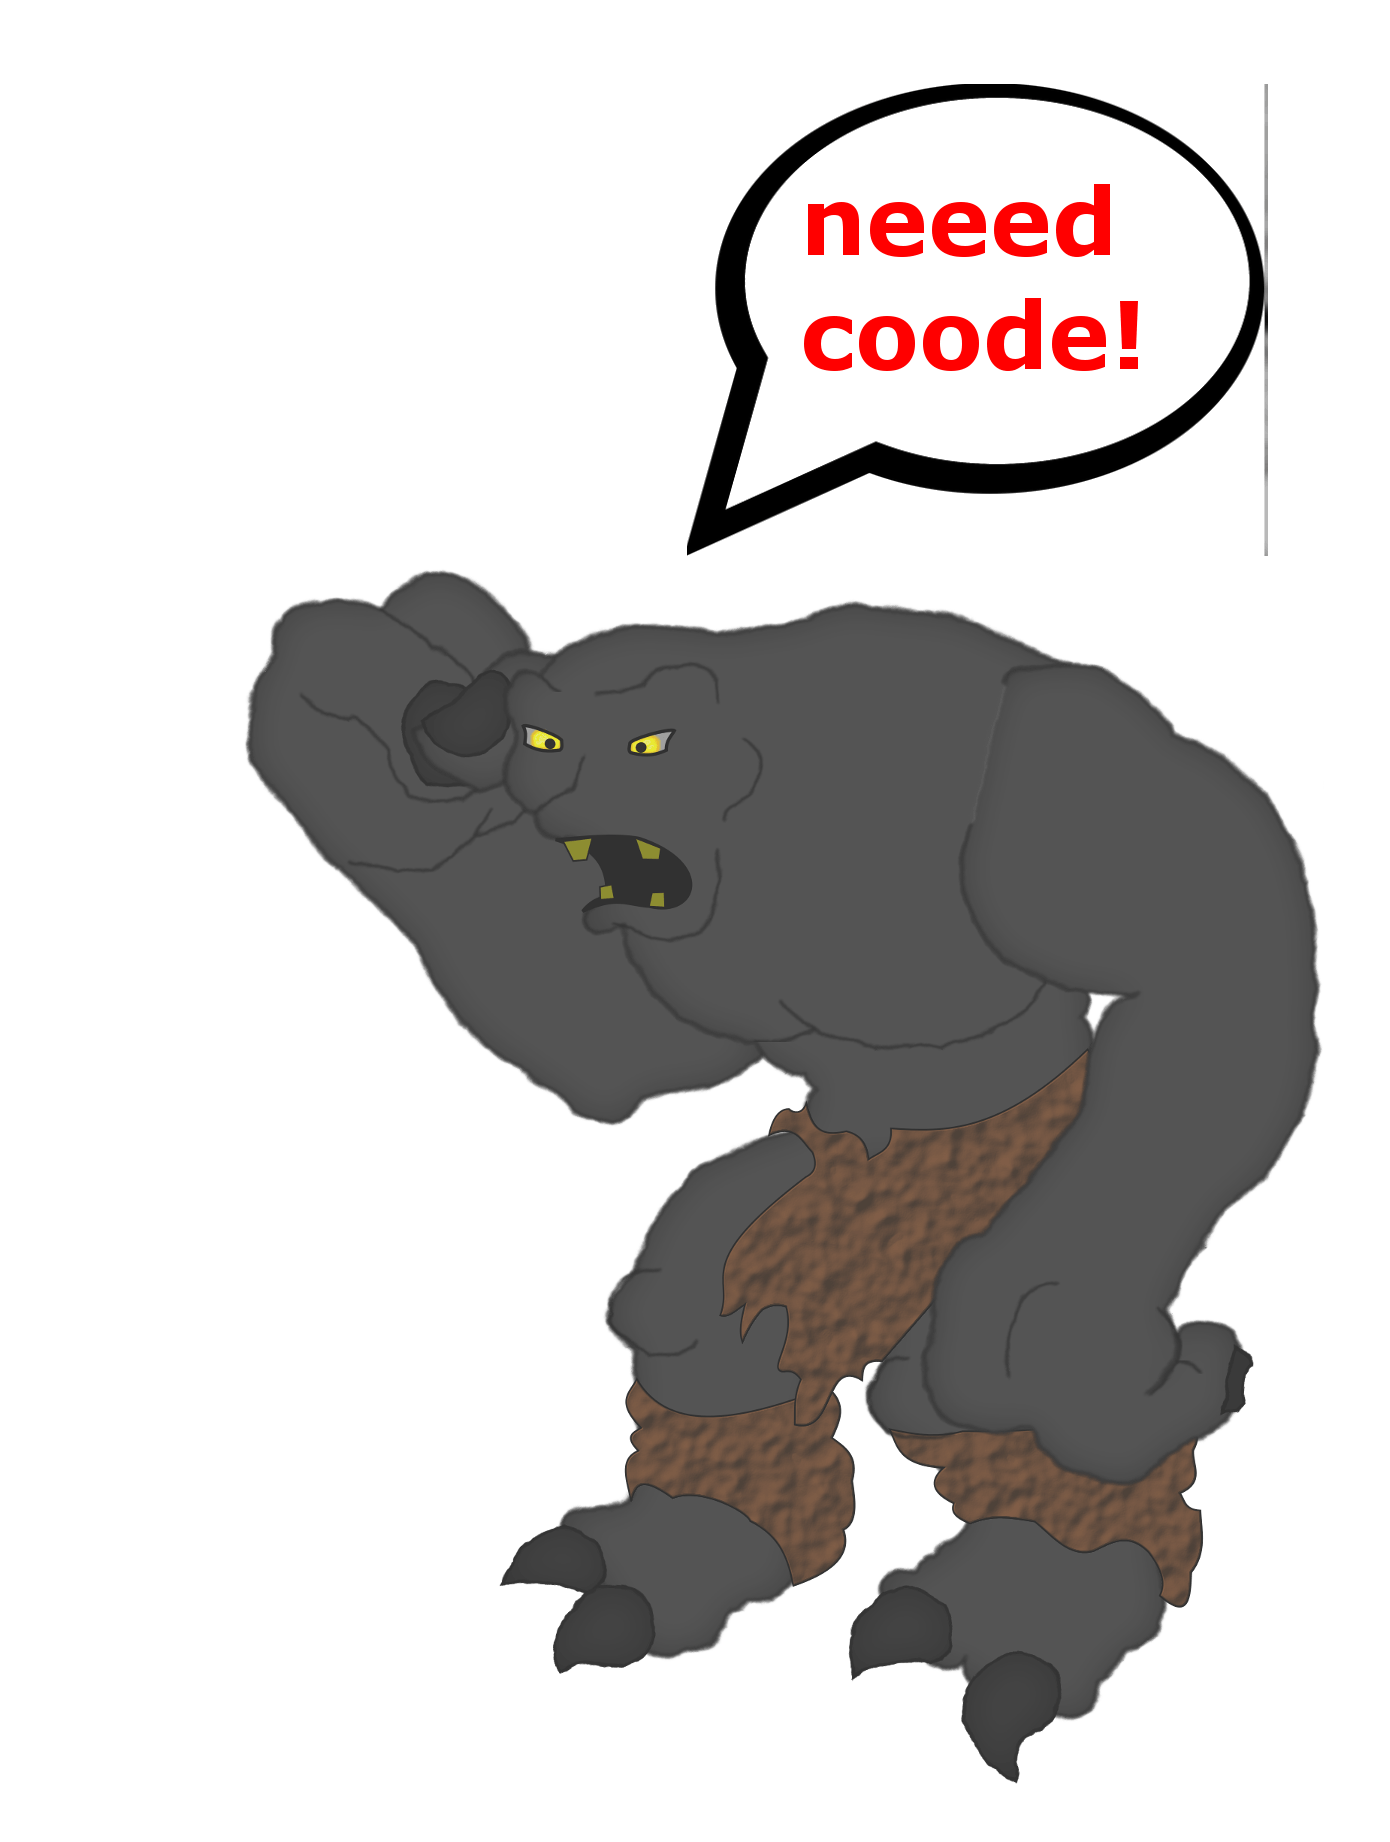 Hungry clipart hungry monster. There are very code